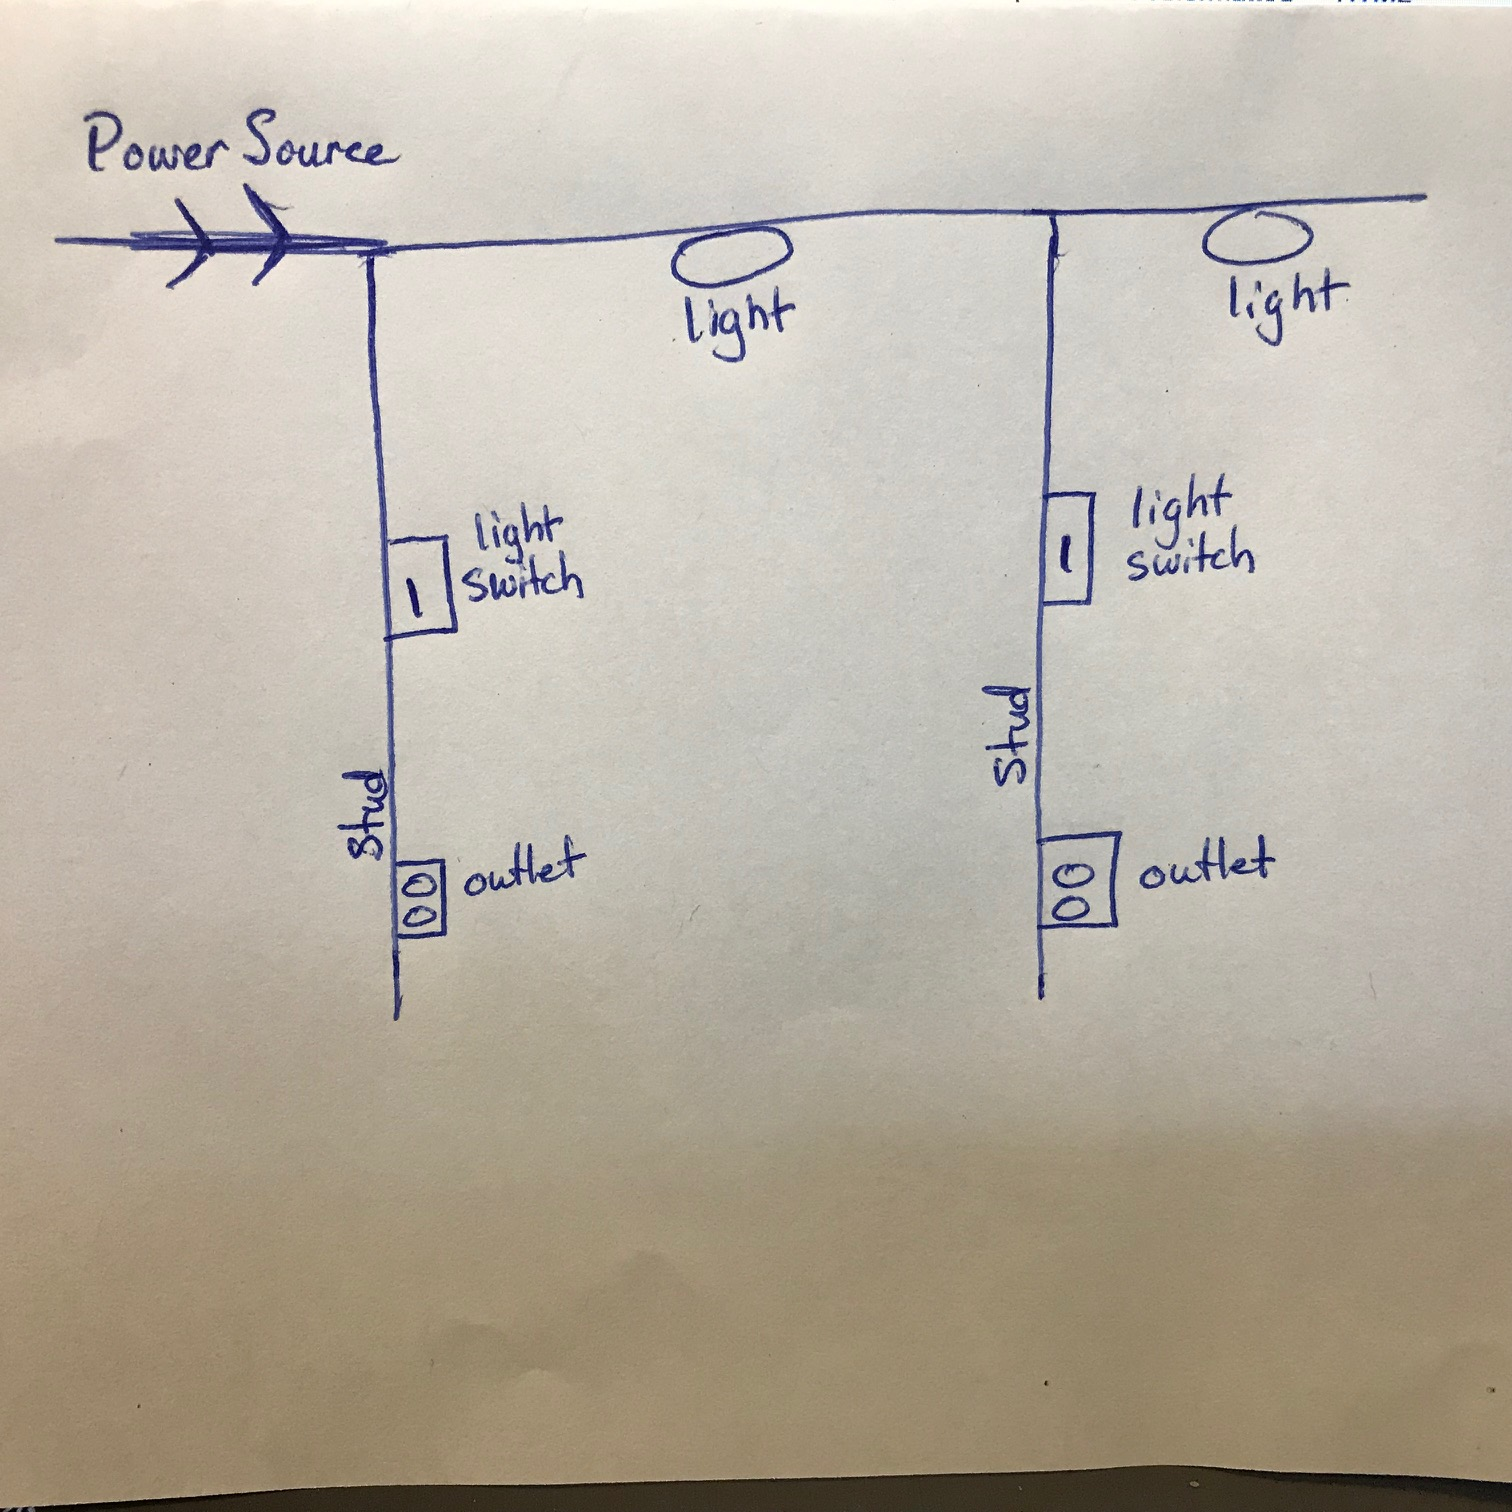 hight resolution of what is the proper and safe wiring to two lights with 2 separate switches and 2 outlets on 1 circuit